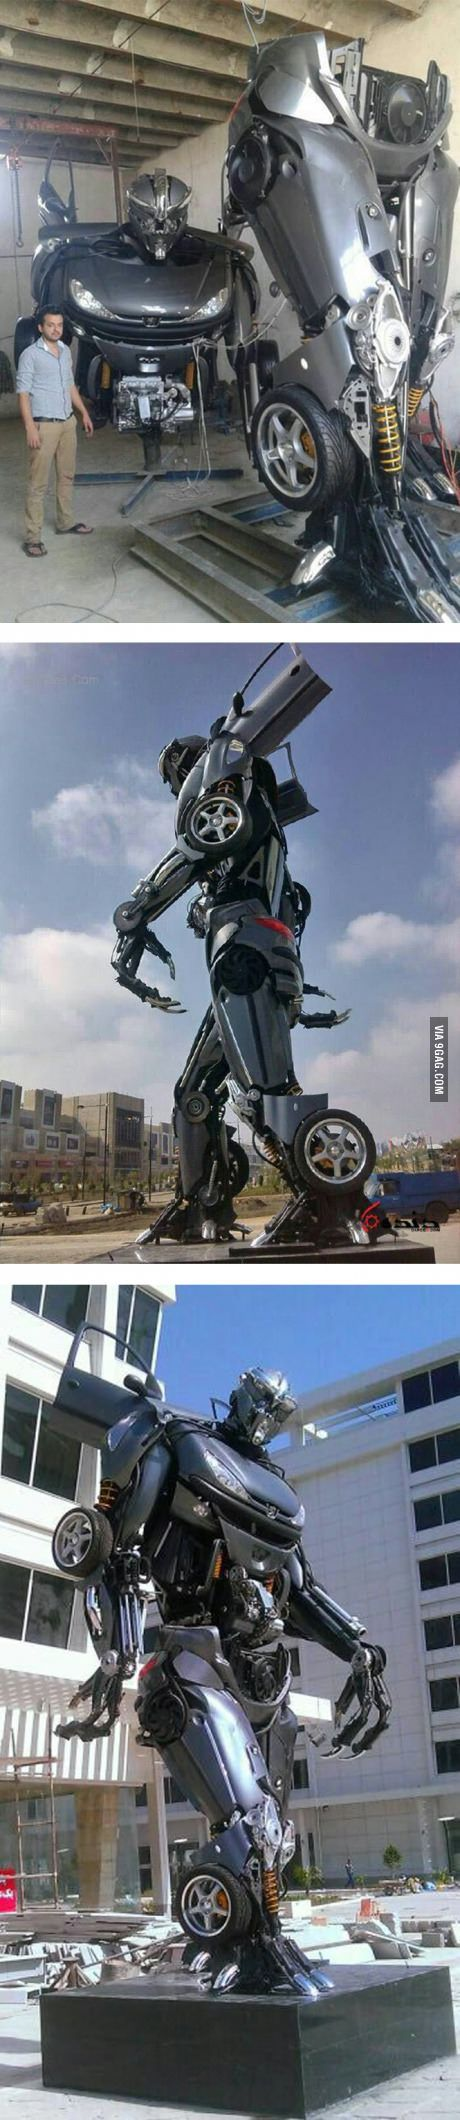 Iranian Transformer Statue Made From Scrap Car Parts.